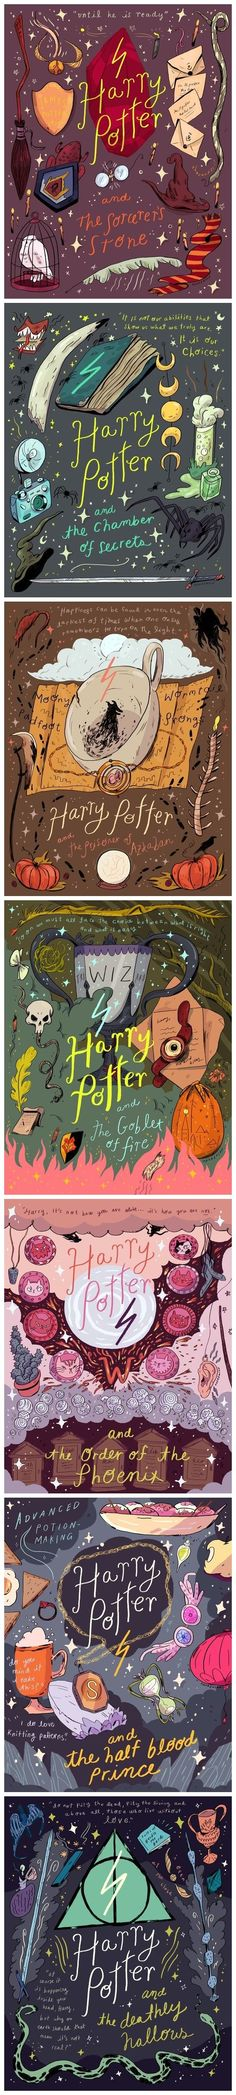 Harry Potter print Illustrations from artist Natalie Andrewson.